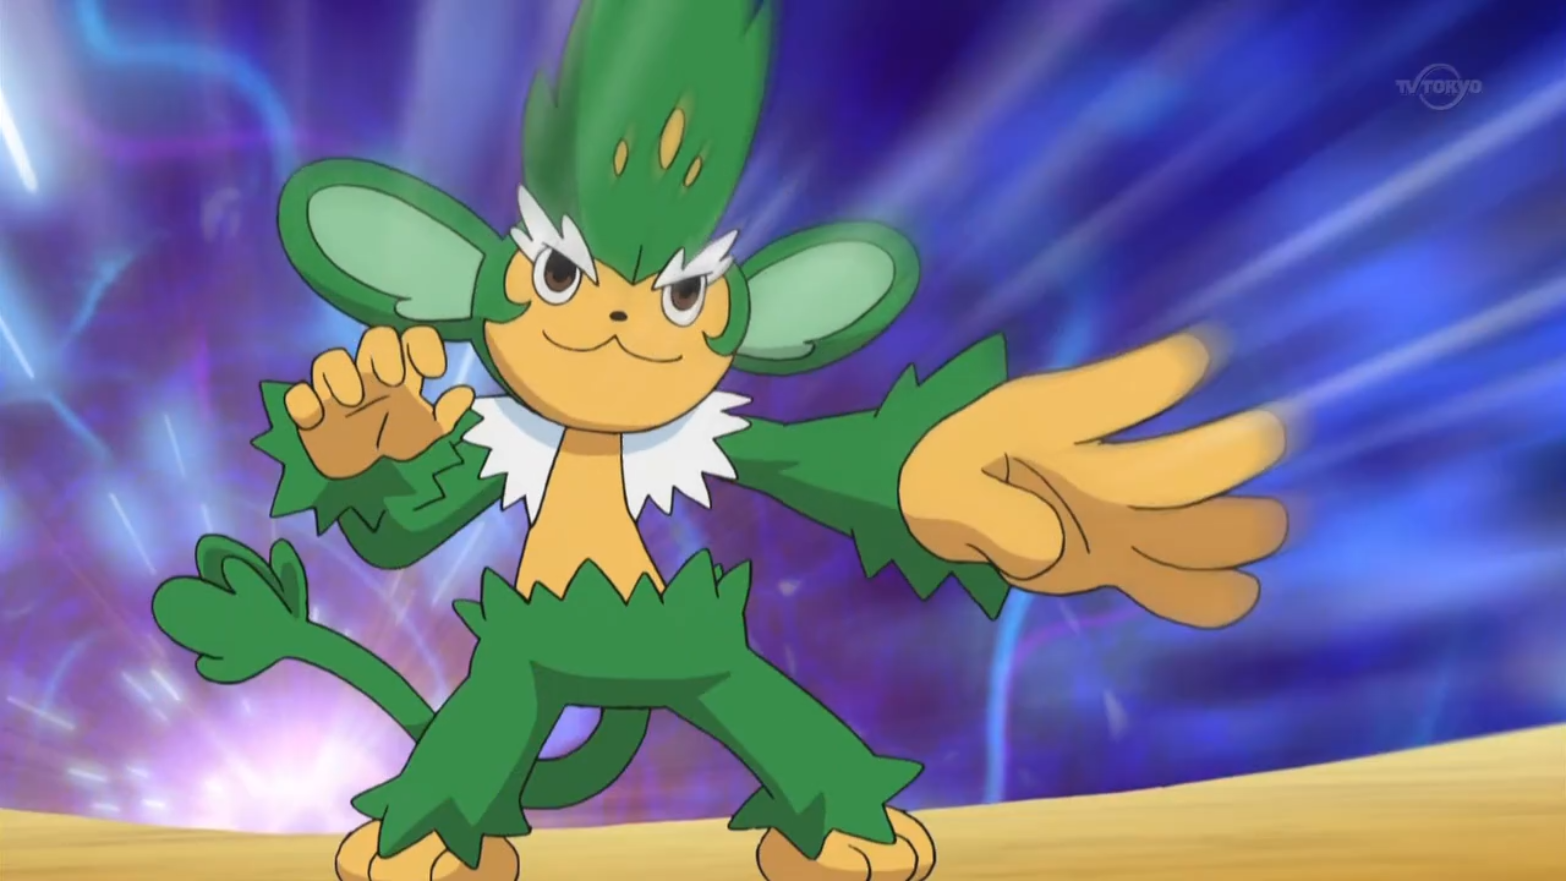 Angus sent Simisage to battle Ash's Scraggy. Despite the offensive moves, Simisage was defeated by Scraggy.